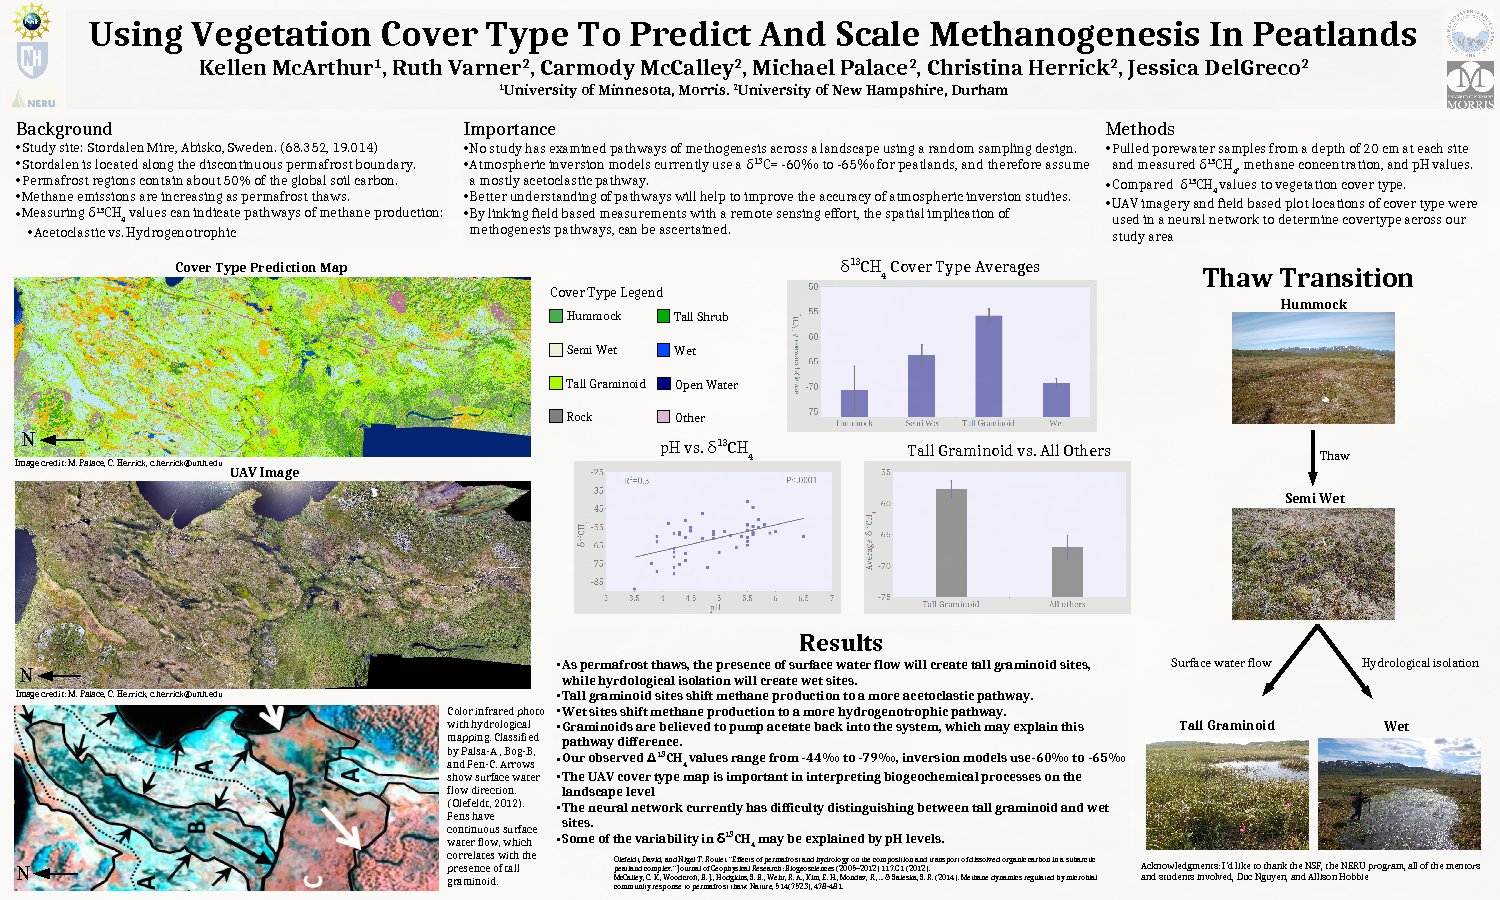 Using Vegetation Cover Type To Predict And Scale Methanogenesis In Peatlands by rakerwin